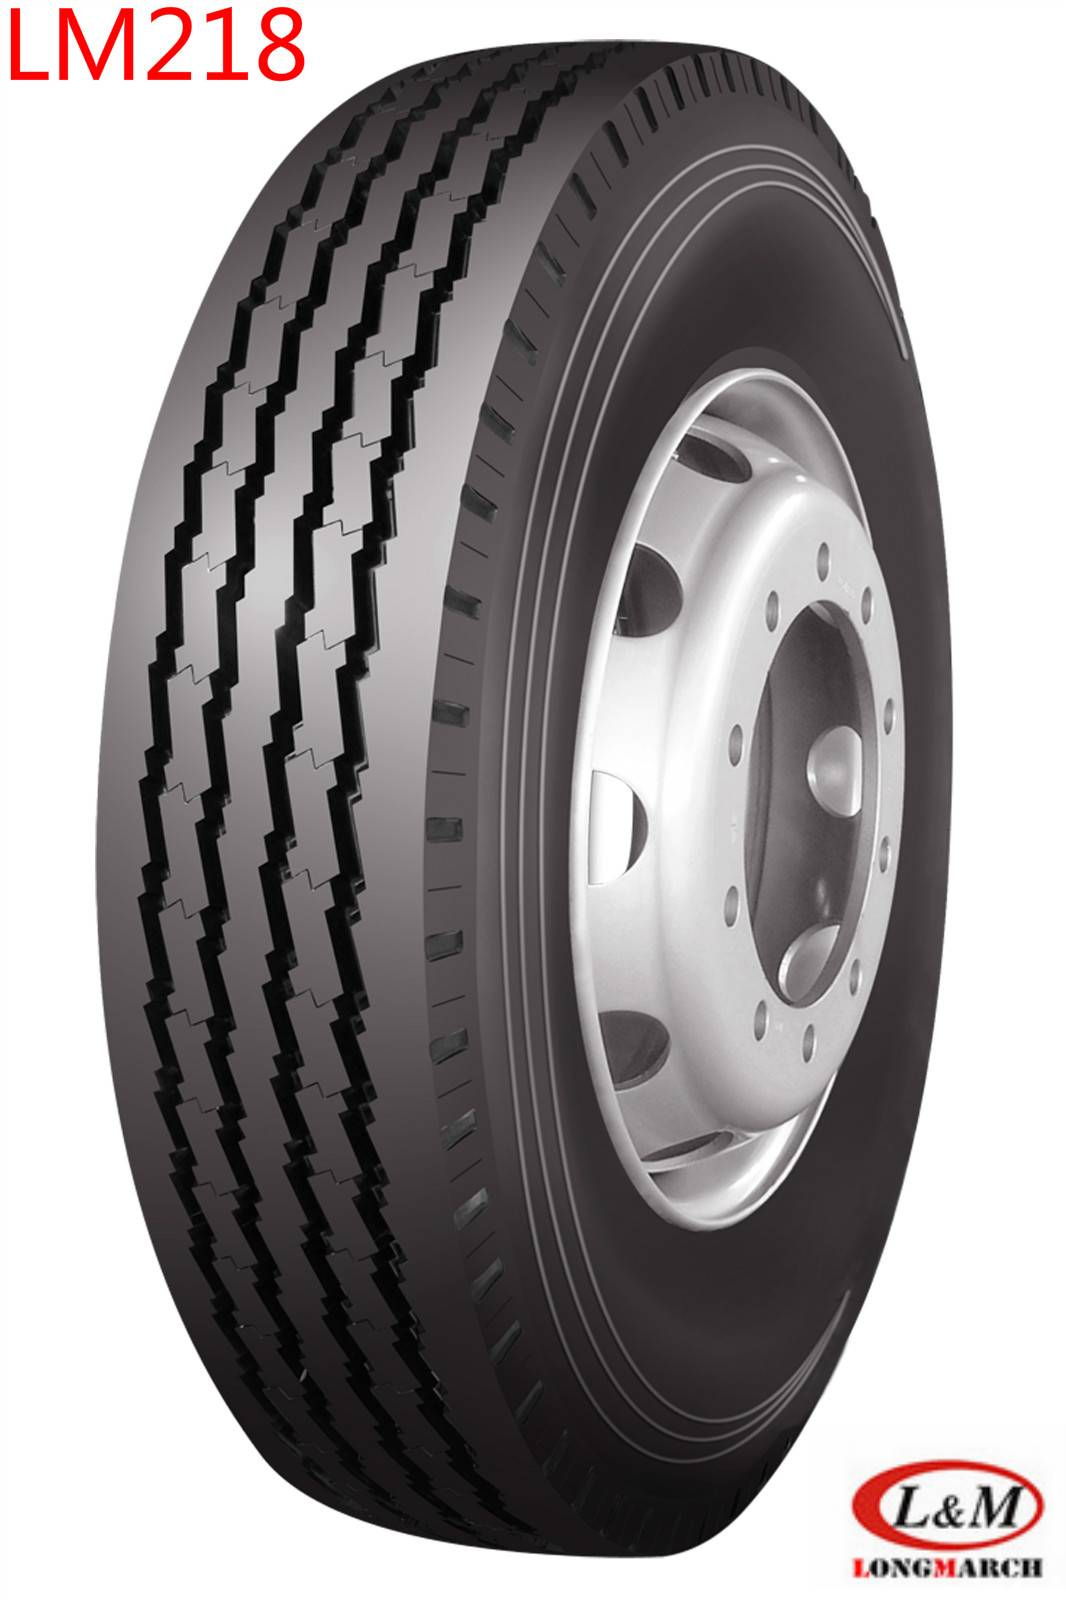 Long March All Position Highway Service Radial Truck Tire (LM218)